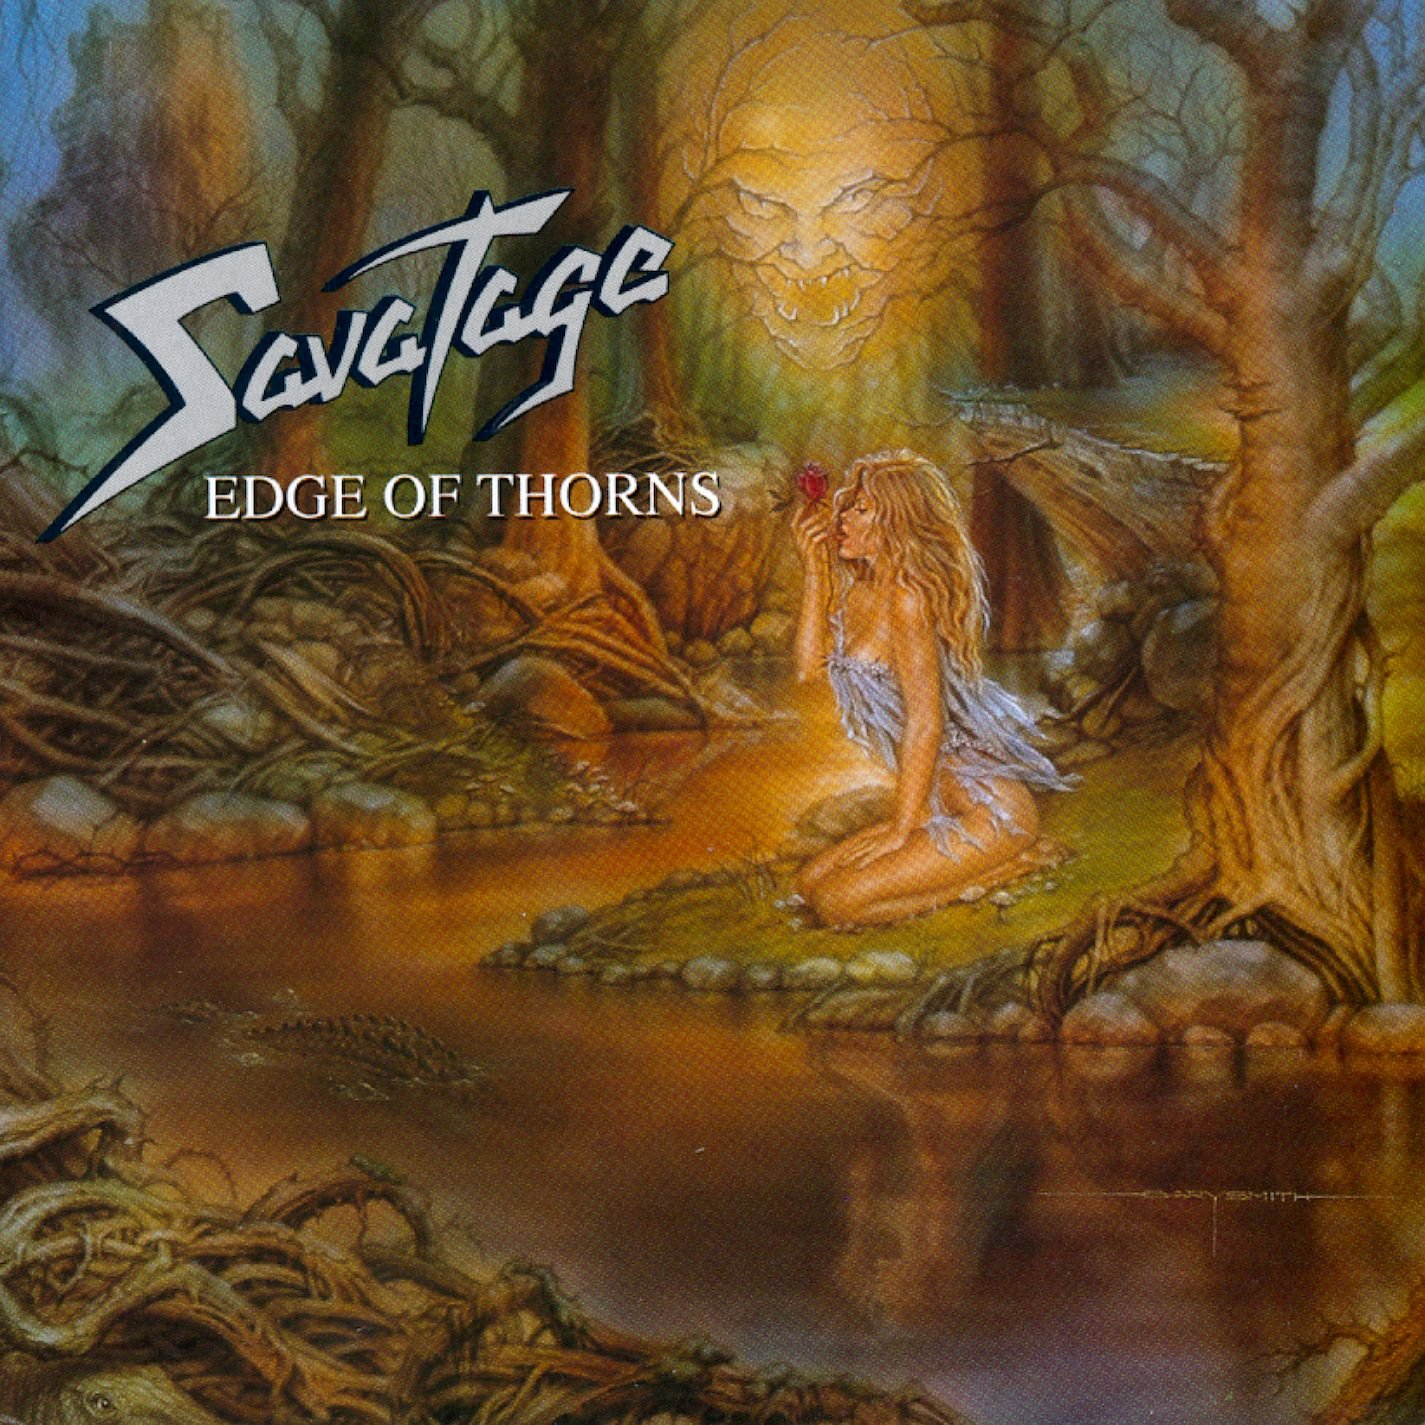 savatage edge of thorns - mega-depth